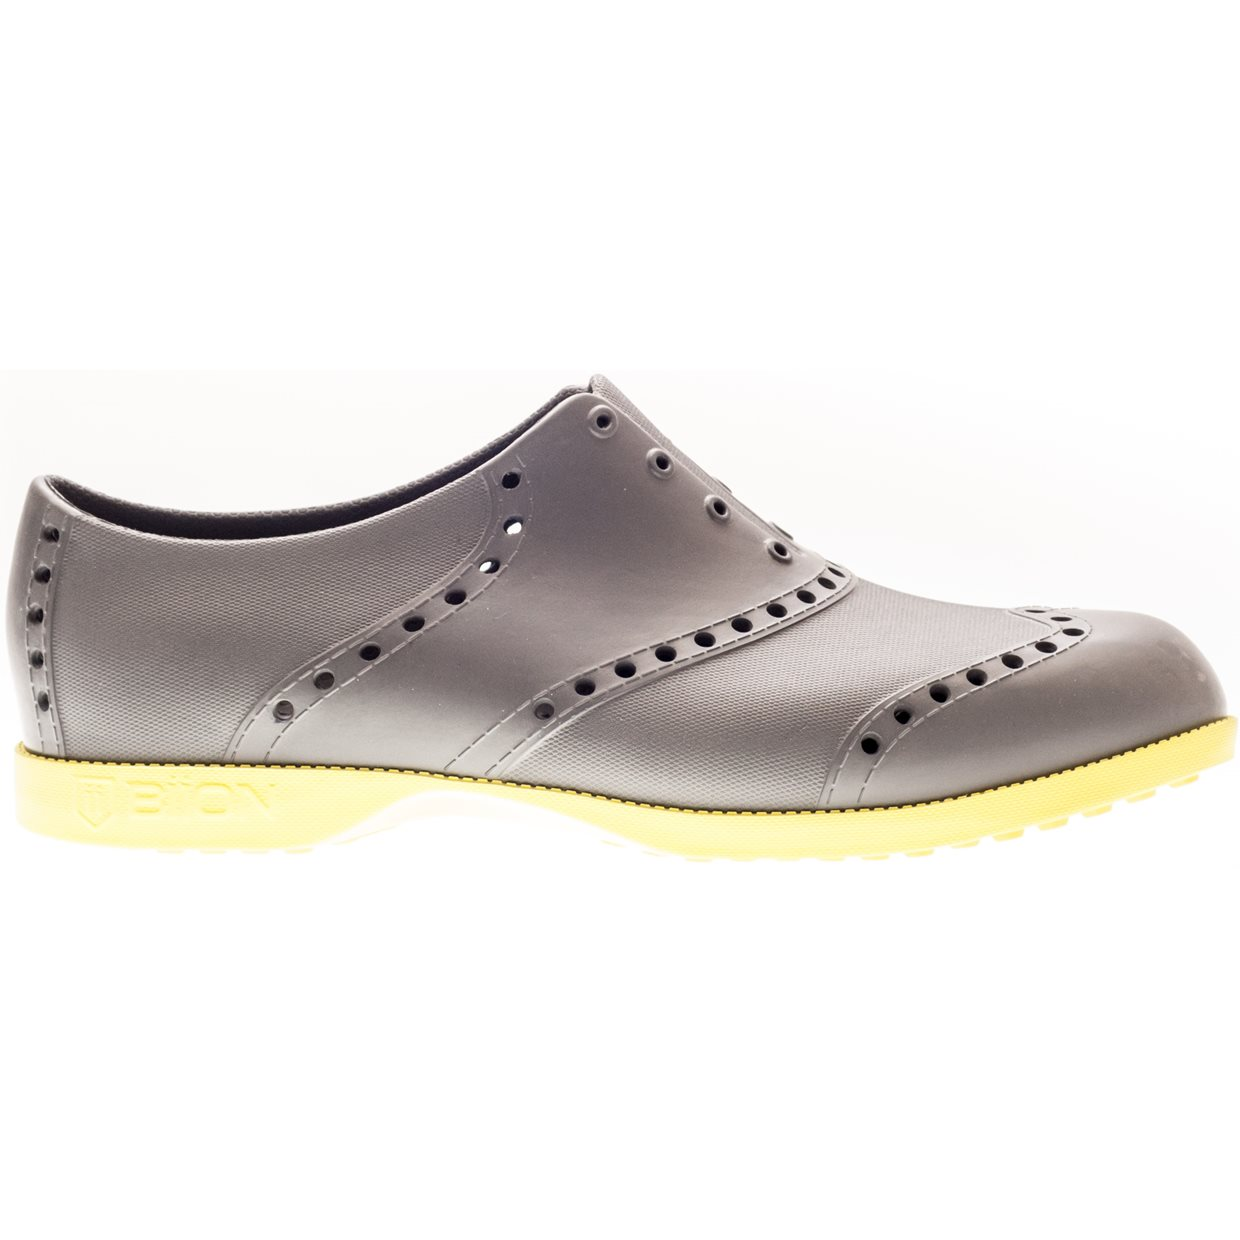 Biion Golf Shoes Reviews